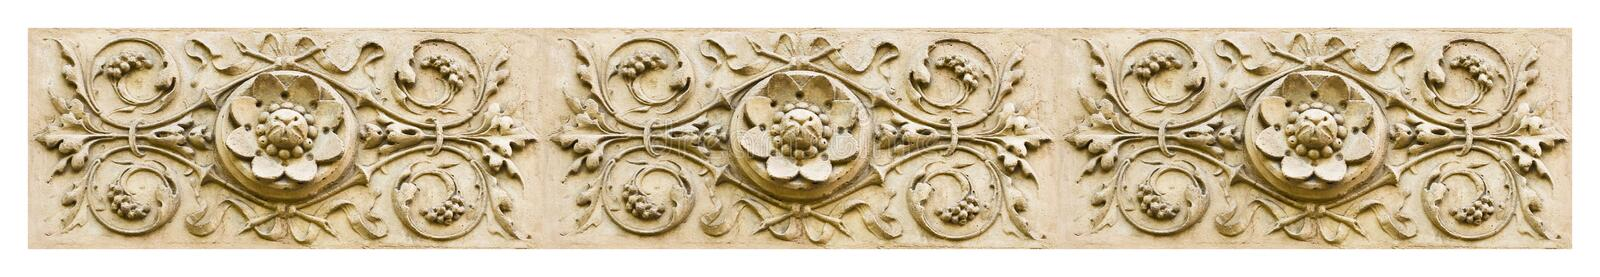 Detail of the floral decor of an Italian facade - banner concept image stock images